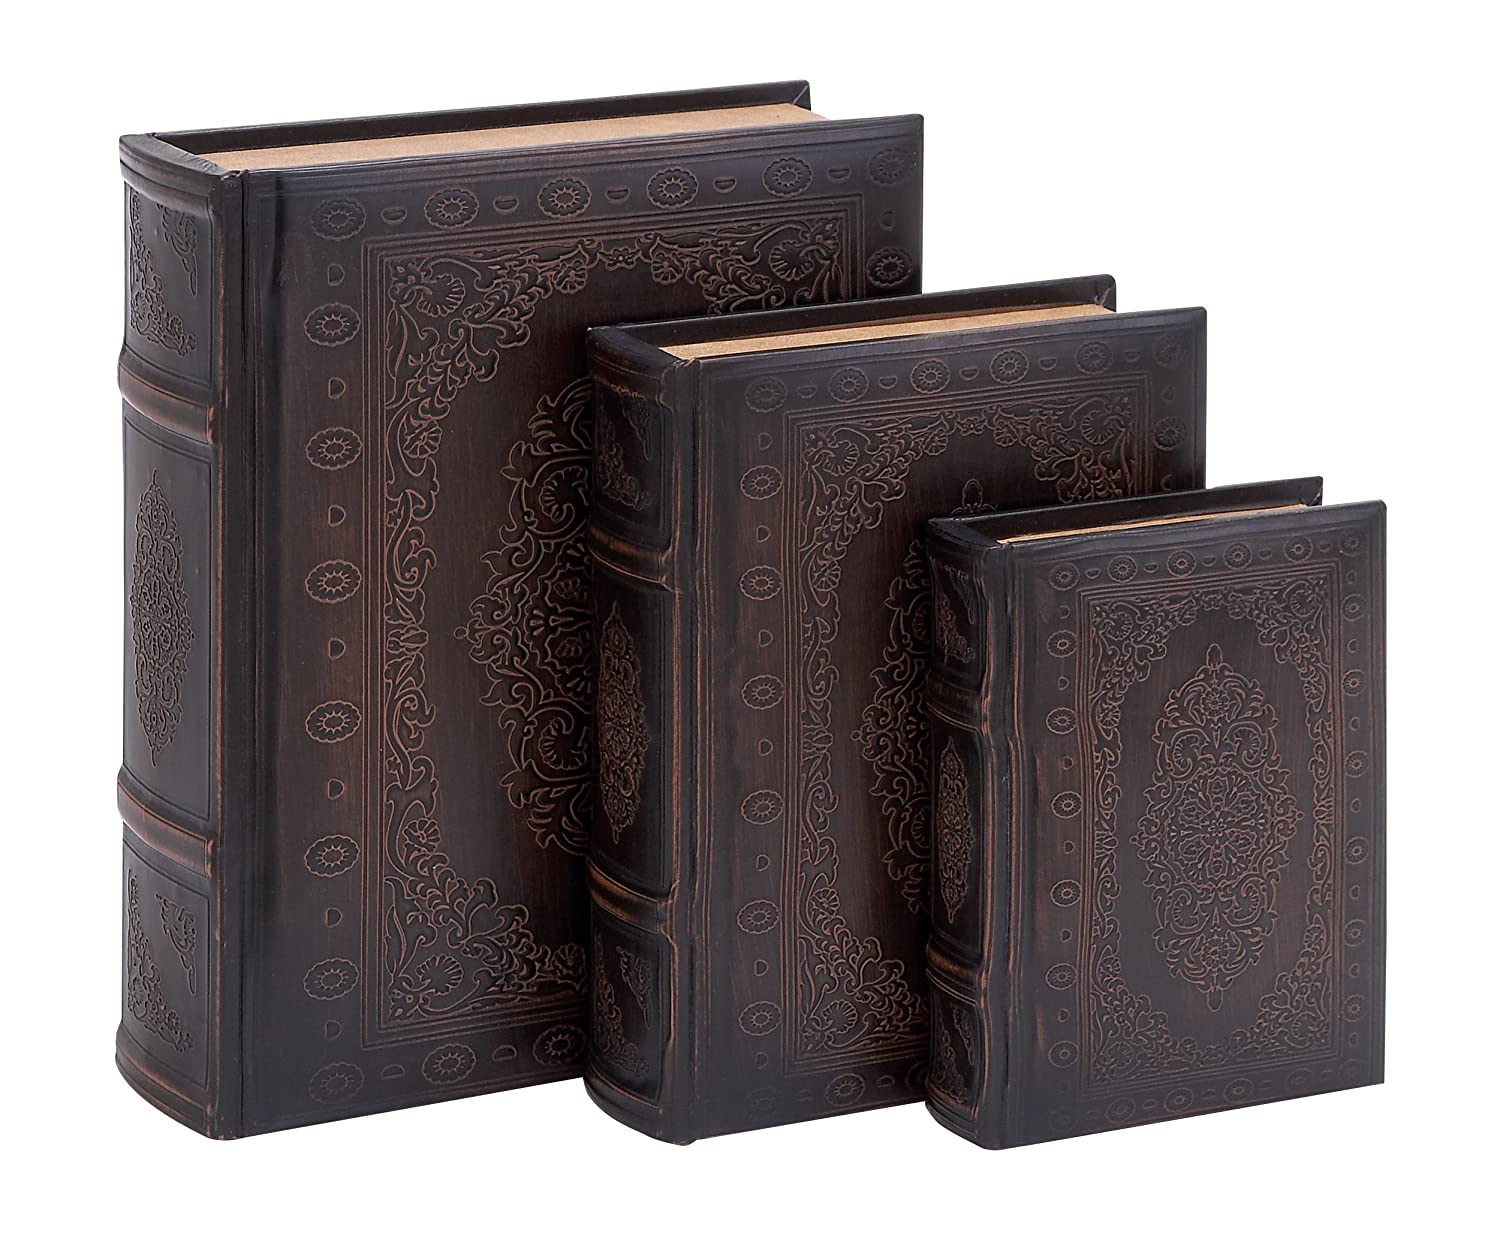 Amazon.com: Deco 79 Smooth Leather Book Box Set with Floral ...